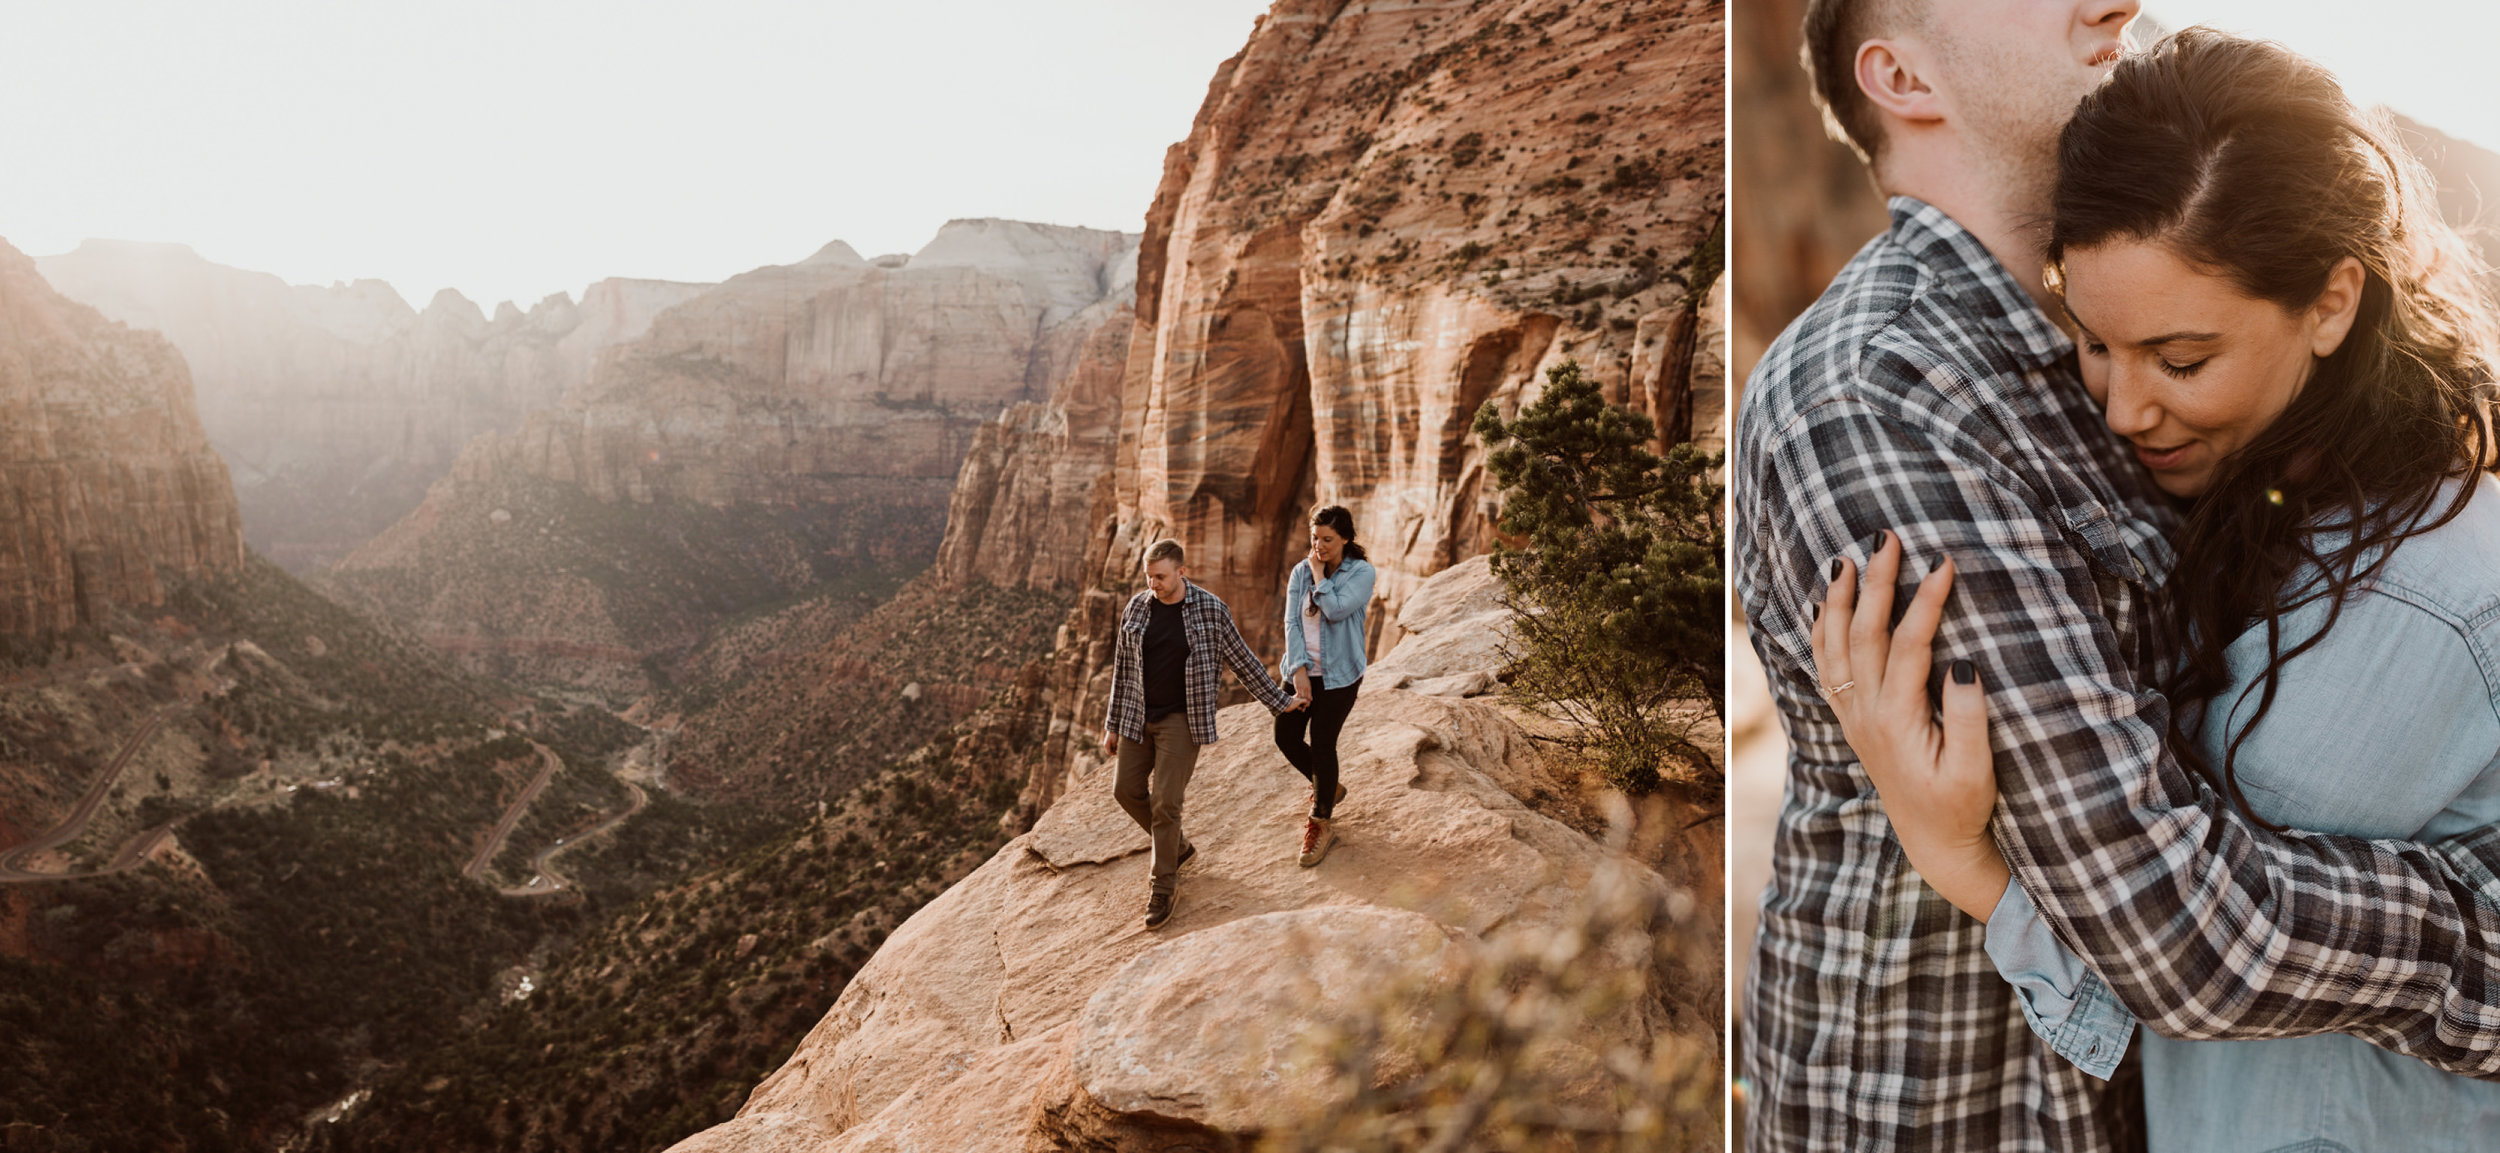 zion-national-park-engagements-57.jpg